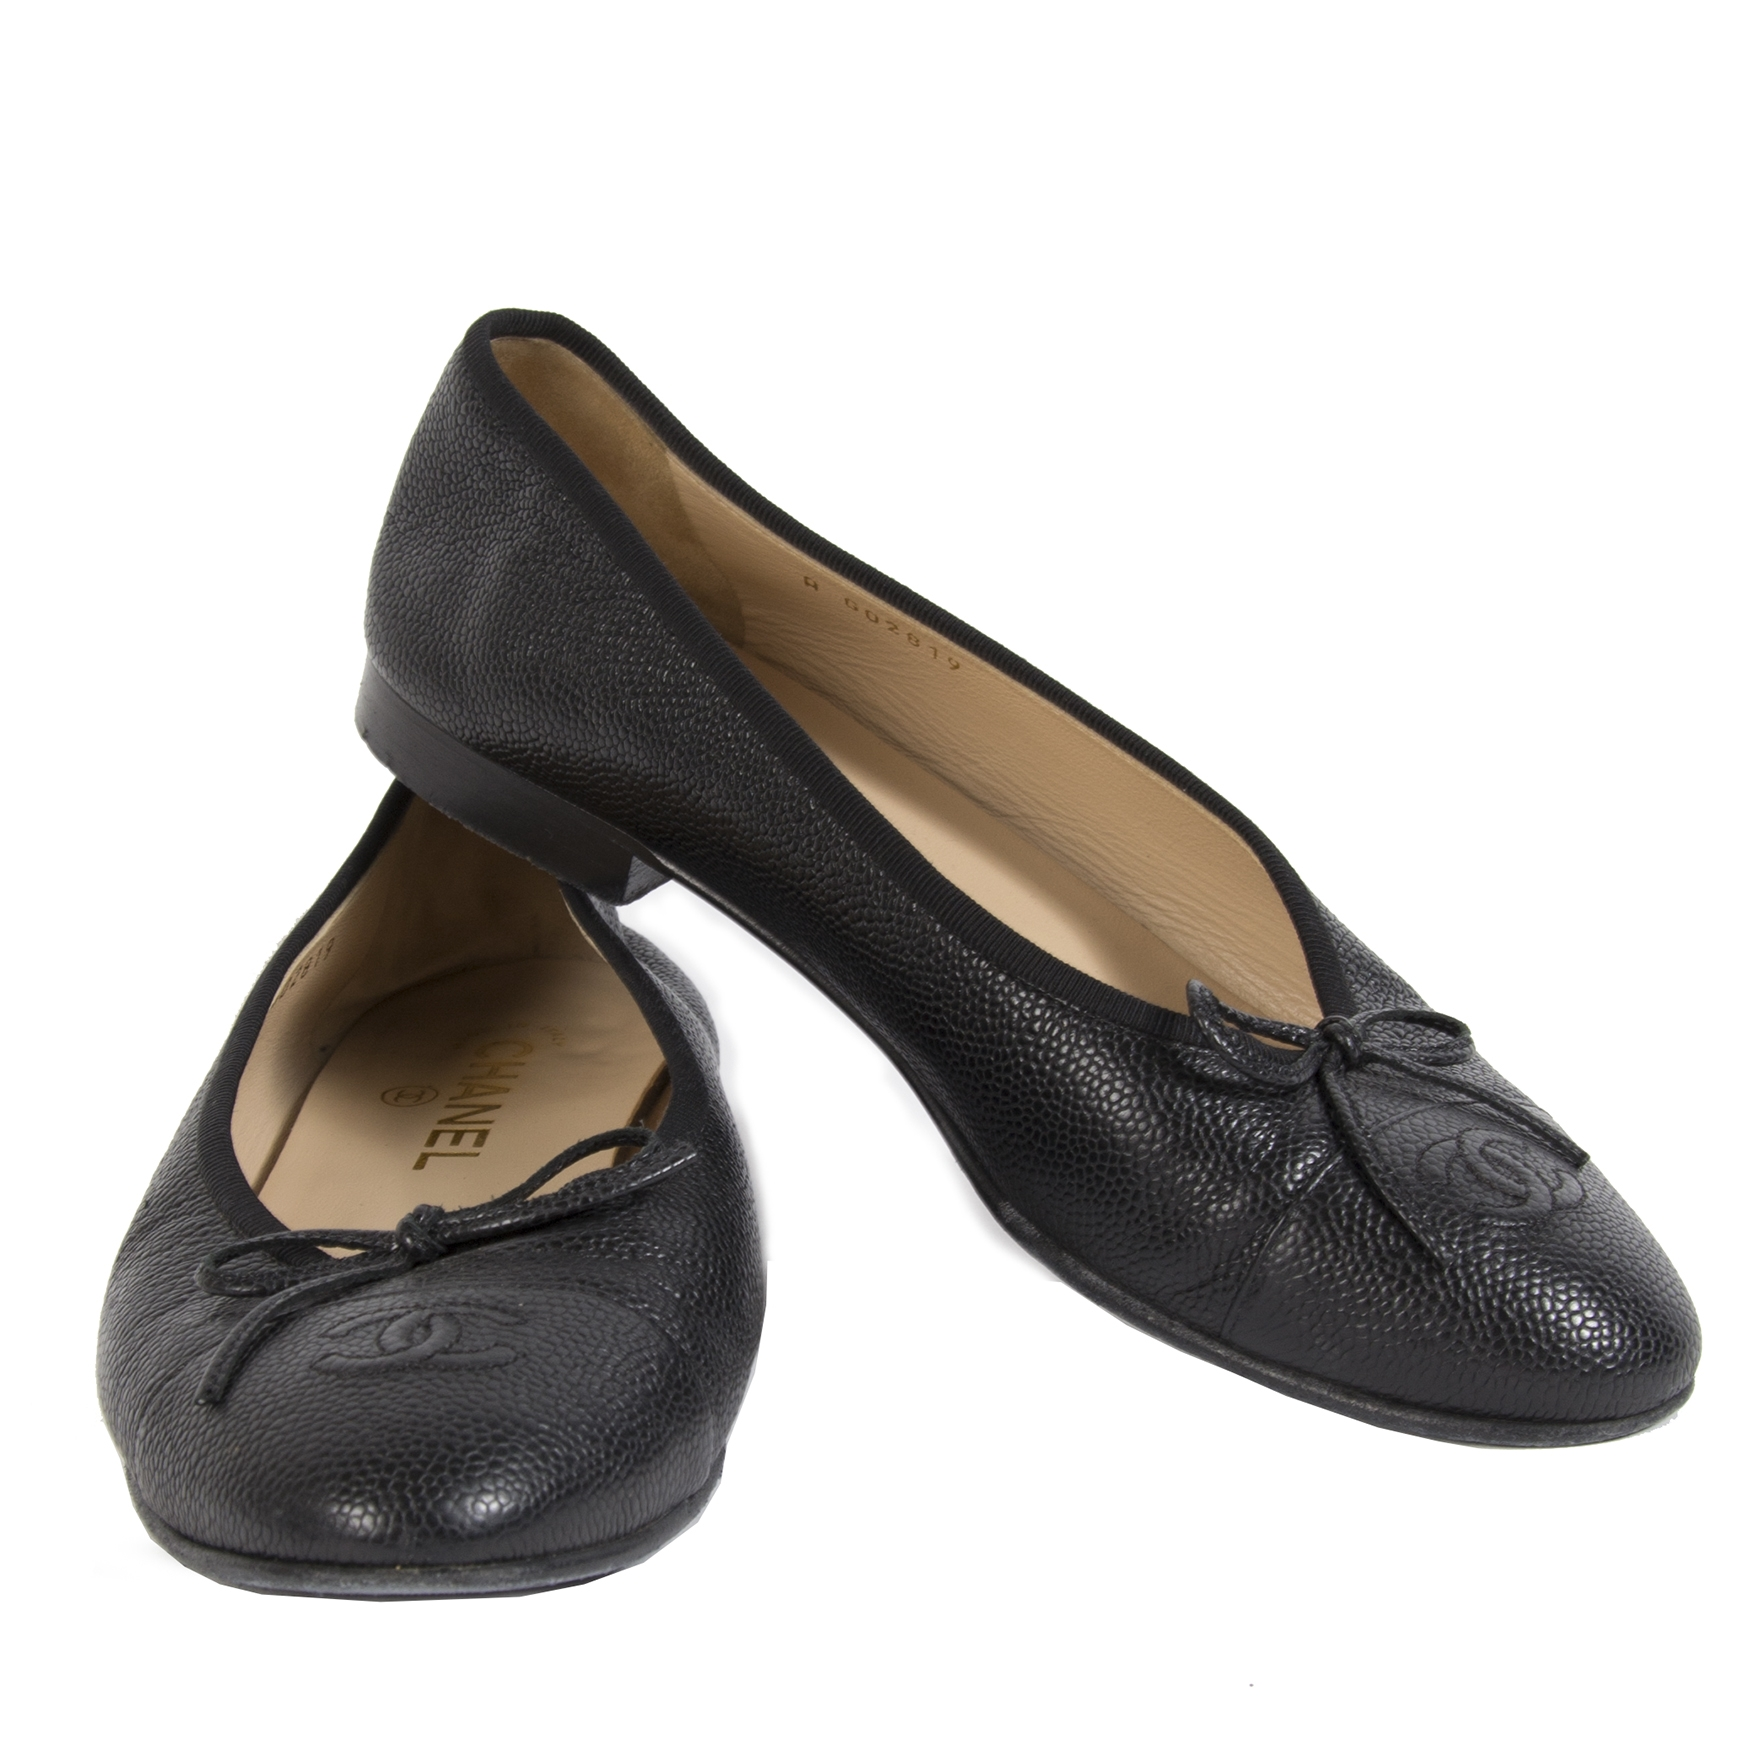 Chanel Caviar Leather Ballet Flats Black - size 39